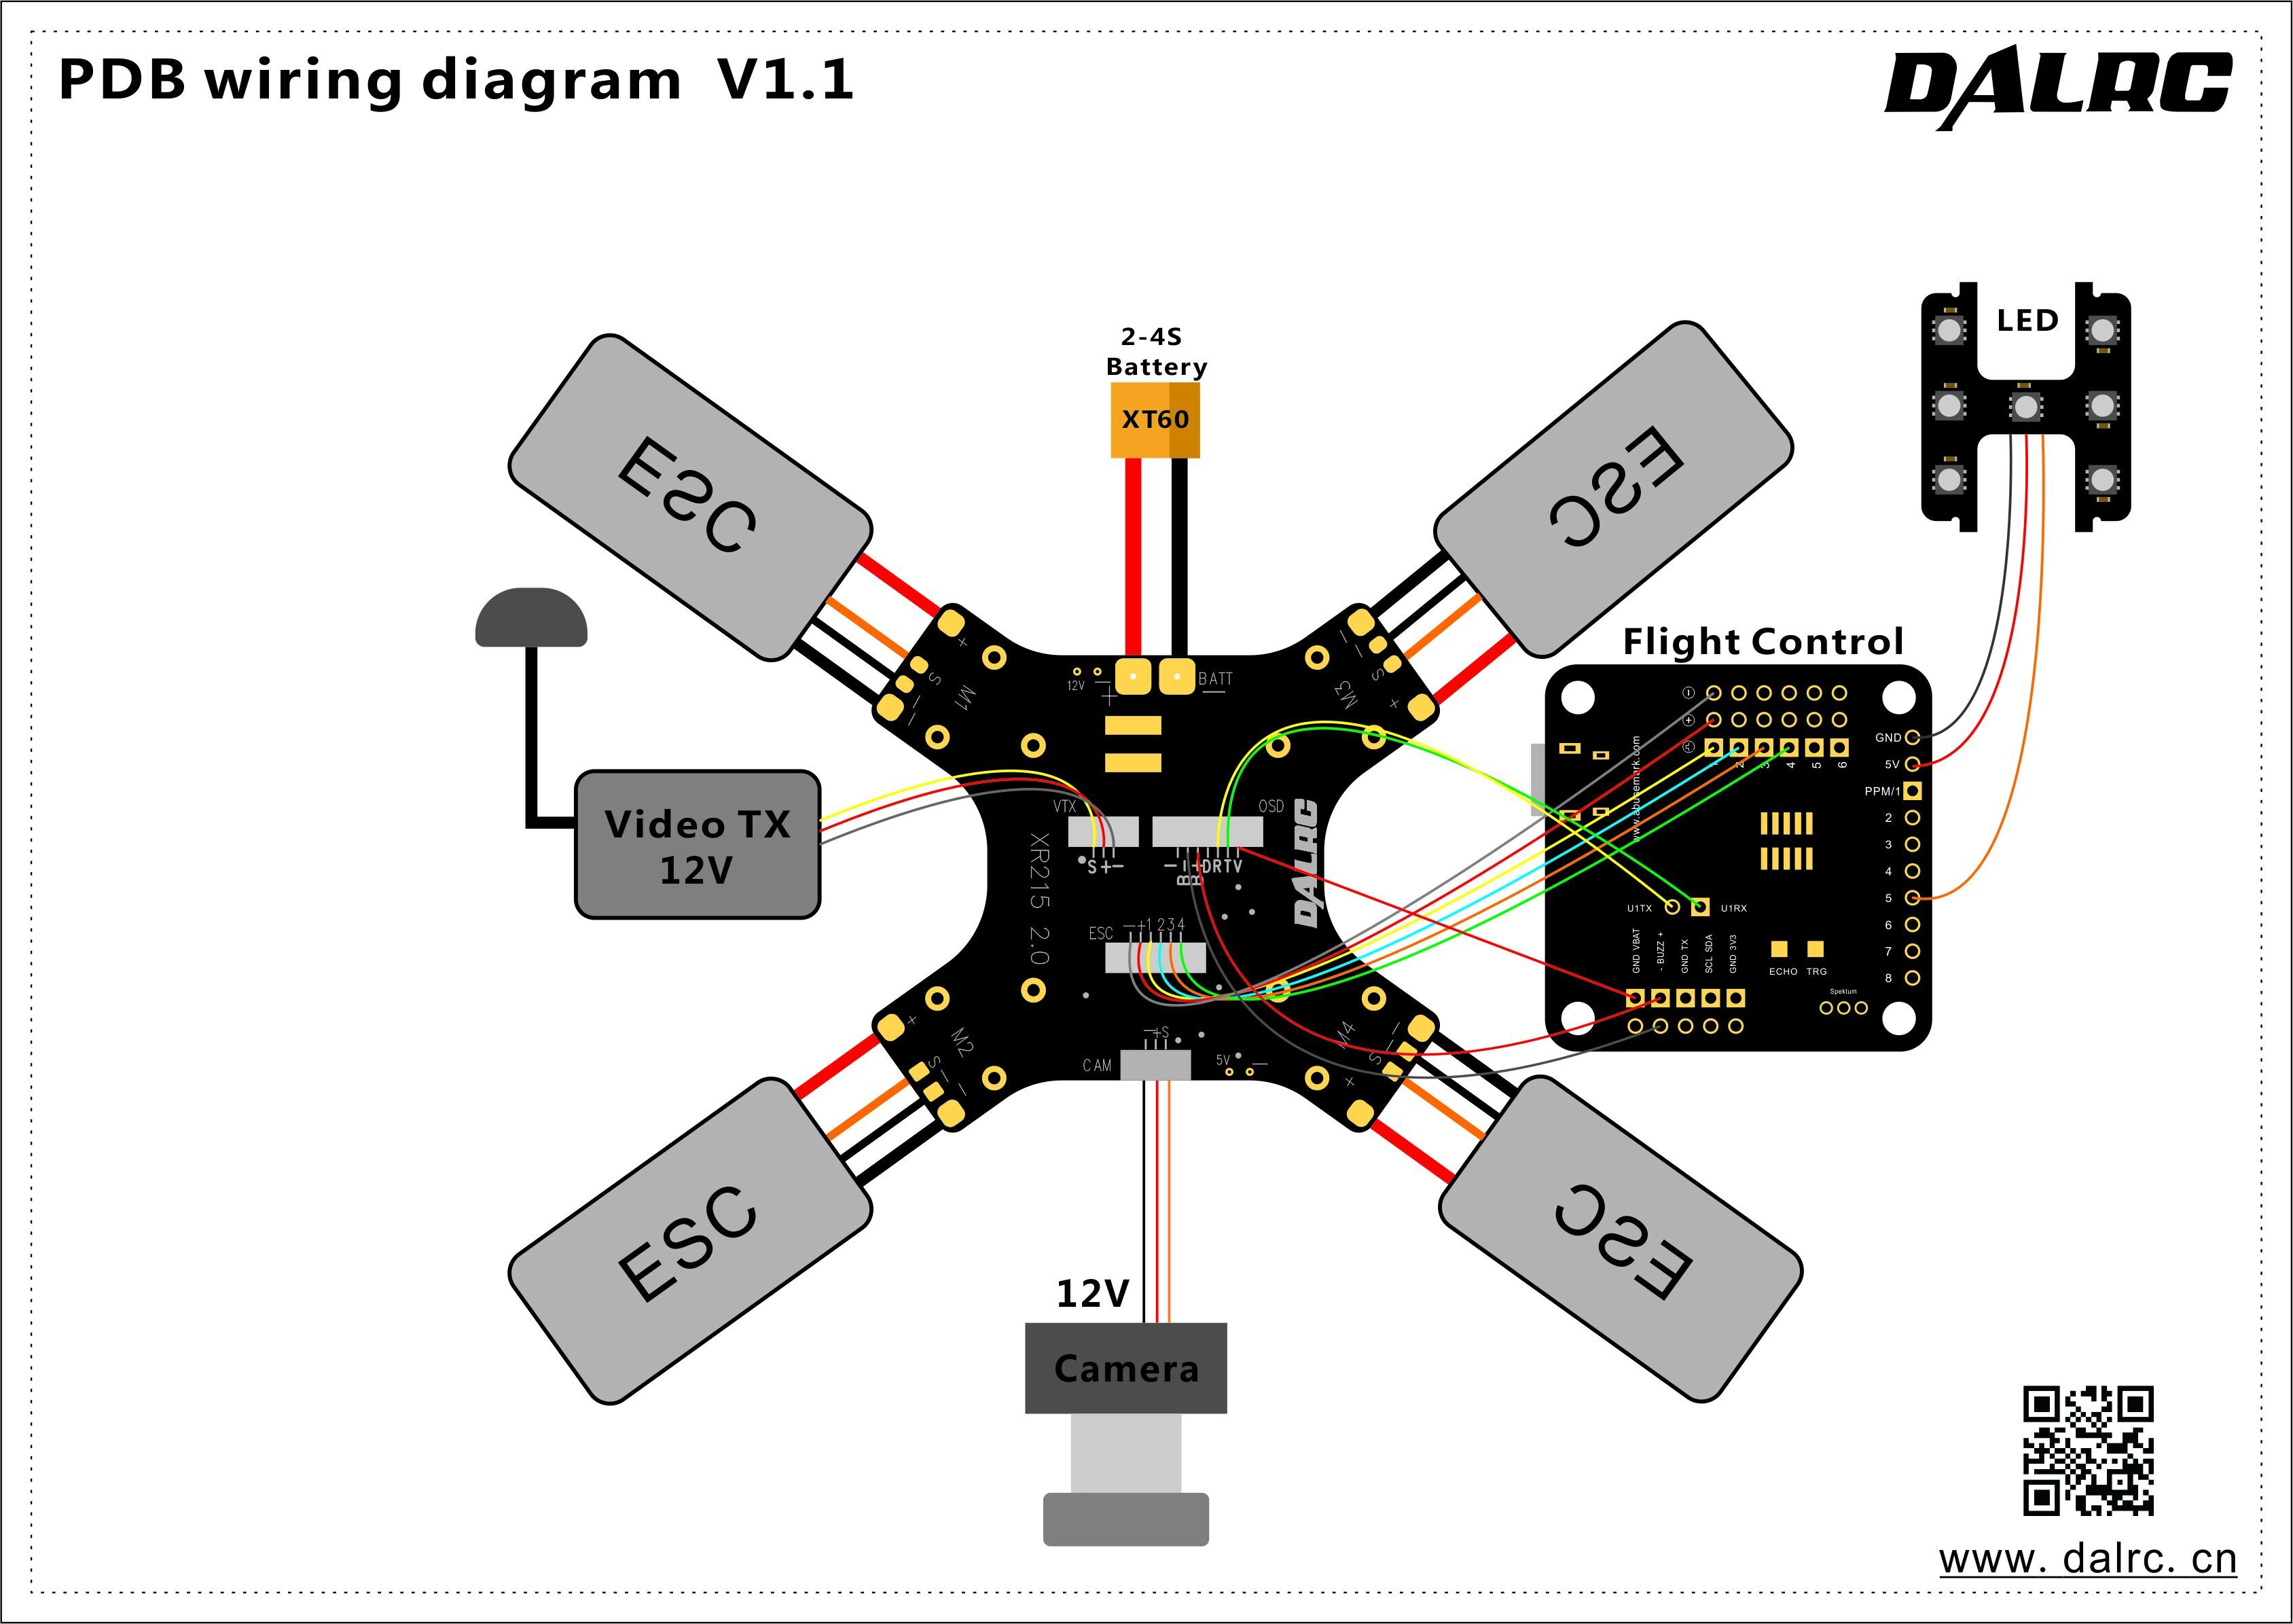 Dalrc Xr215 Plus Racing Drone Frame Built Pdb Osd Buzzer on camera circuit board diagram